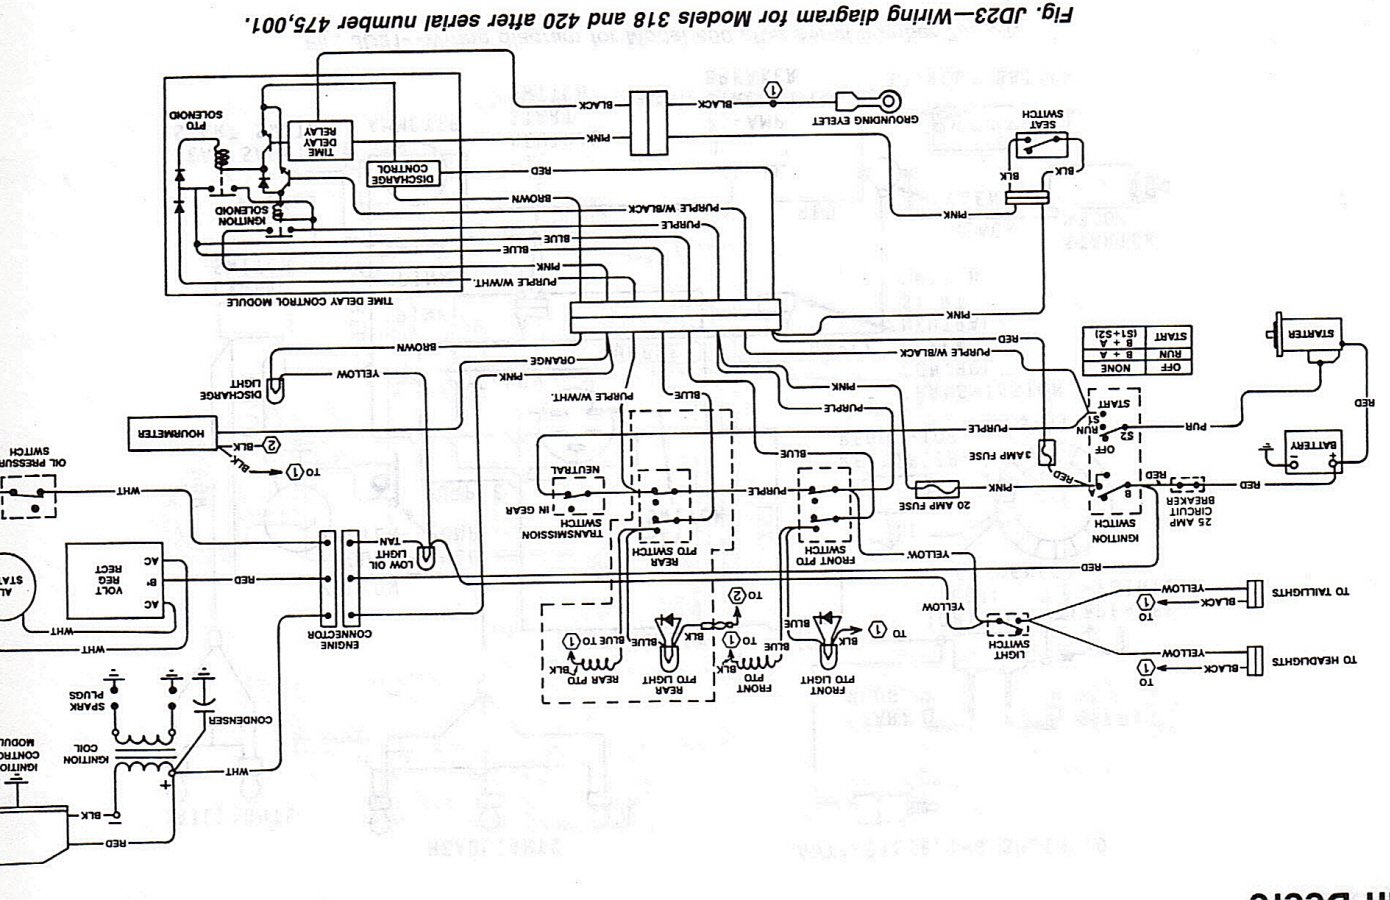 2010 08 15_014701_8 13 2010_8;23;23_PM i have been fussing with a deere 318 tractor for a number of weeks john deere 180 wiring diagram at virtualis.co